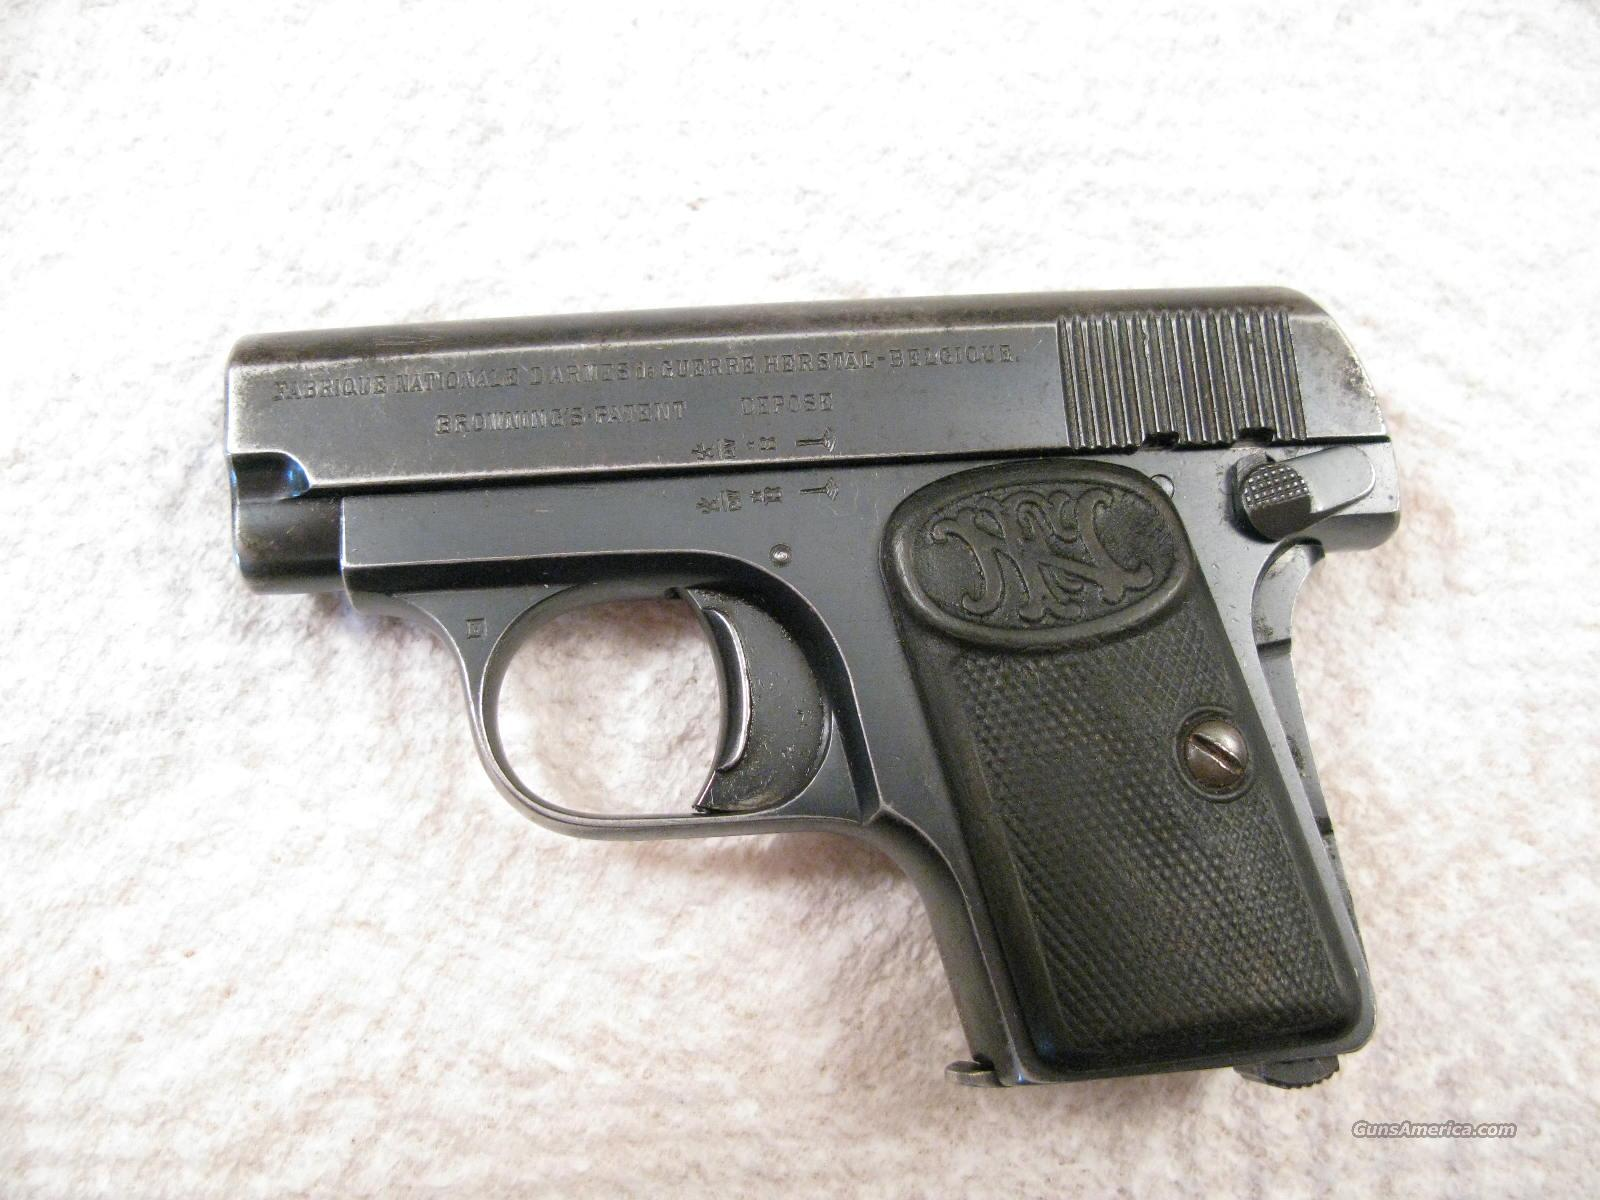 FN Model 1905-FN .25 Auto   Guns > Pistols > Browning Pistols > Baby Browning